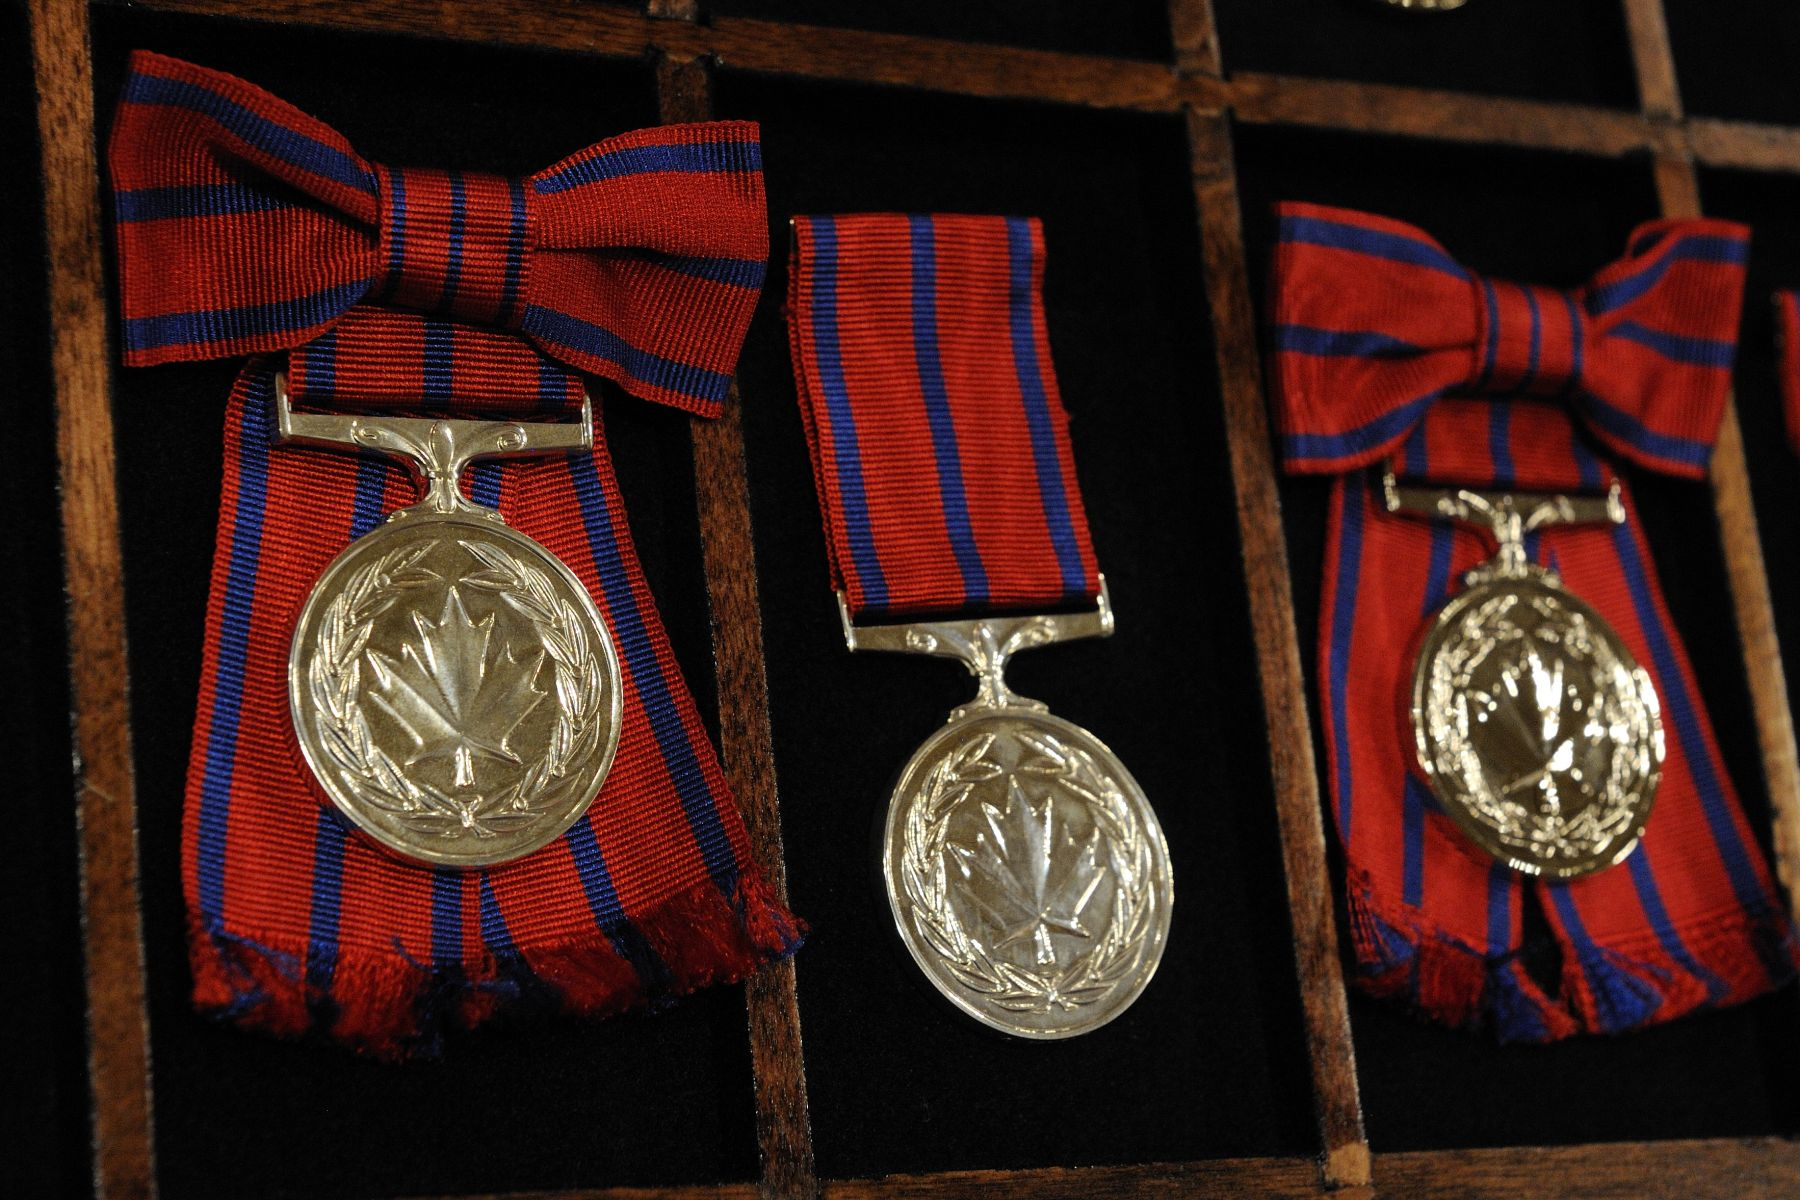 The Governor General presented two Stars of Courage and 42 Medals of Bravery during a ceremony at Rideau Hall, on October 28, 2011.